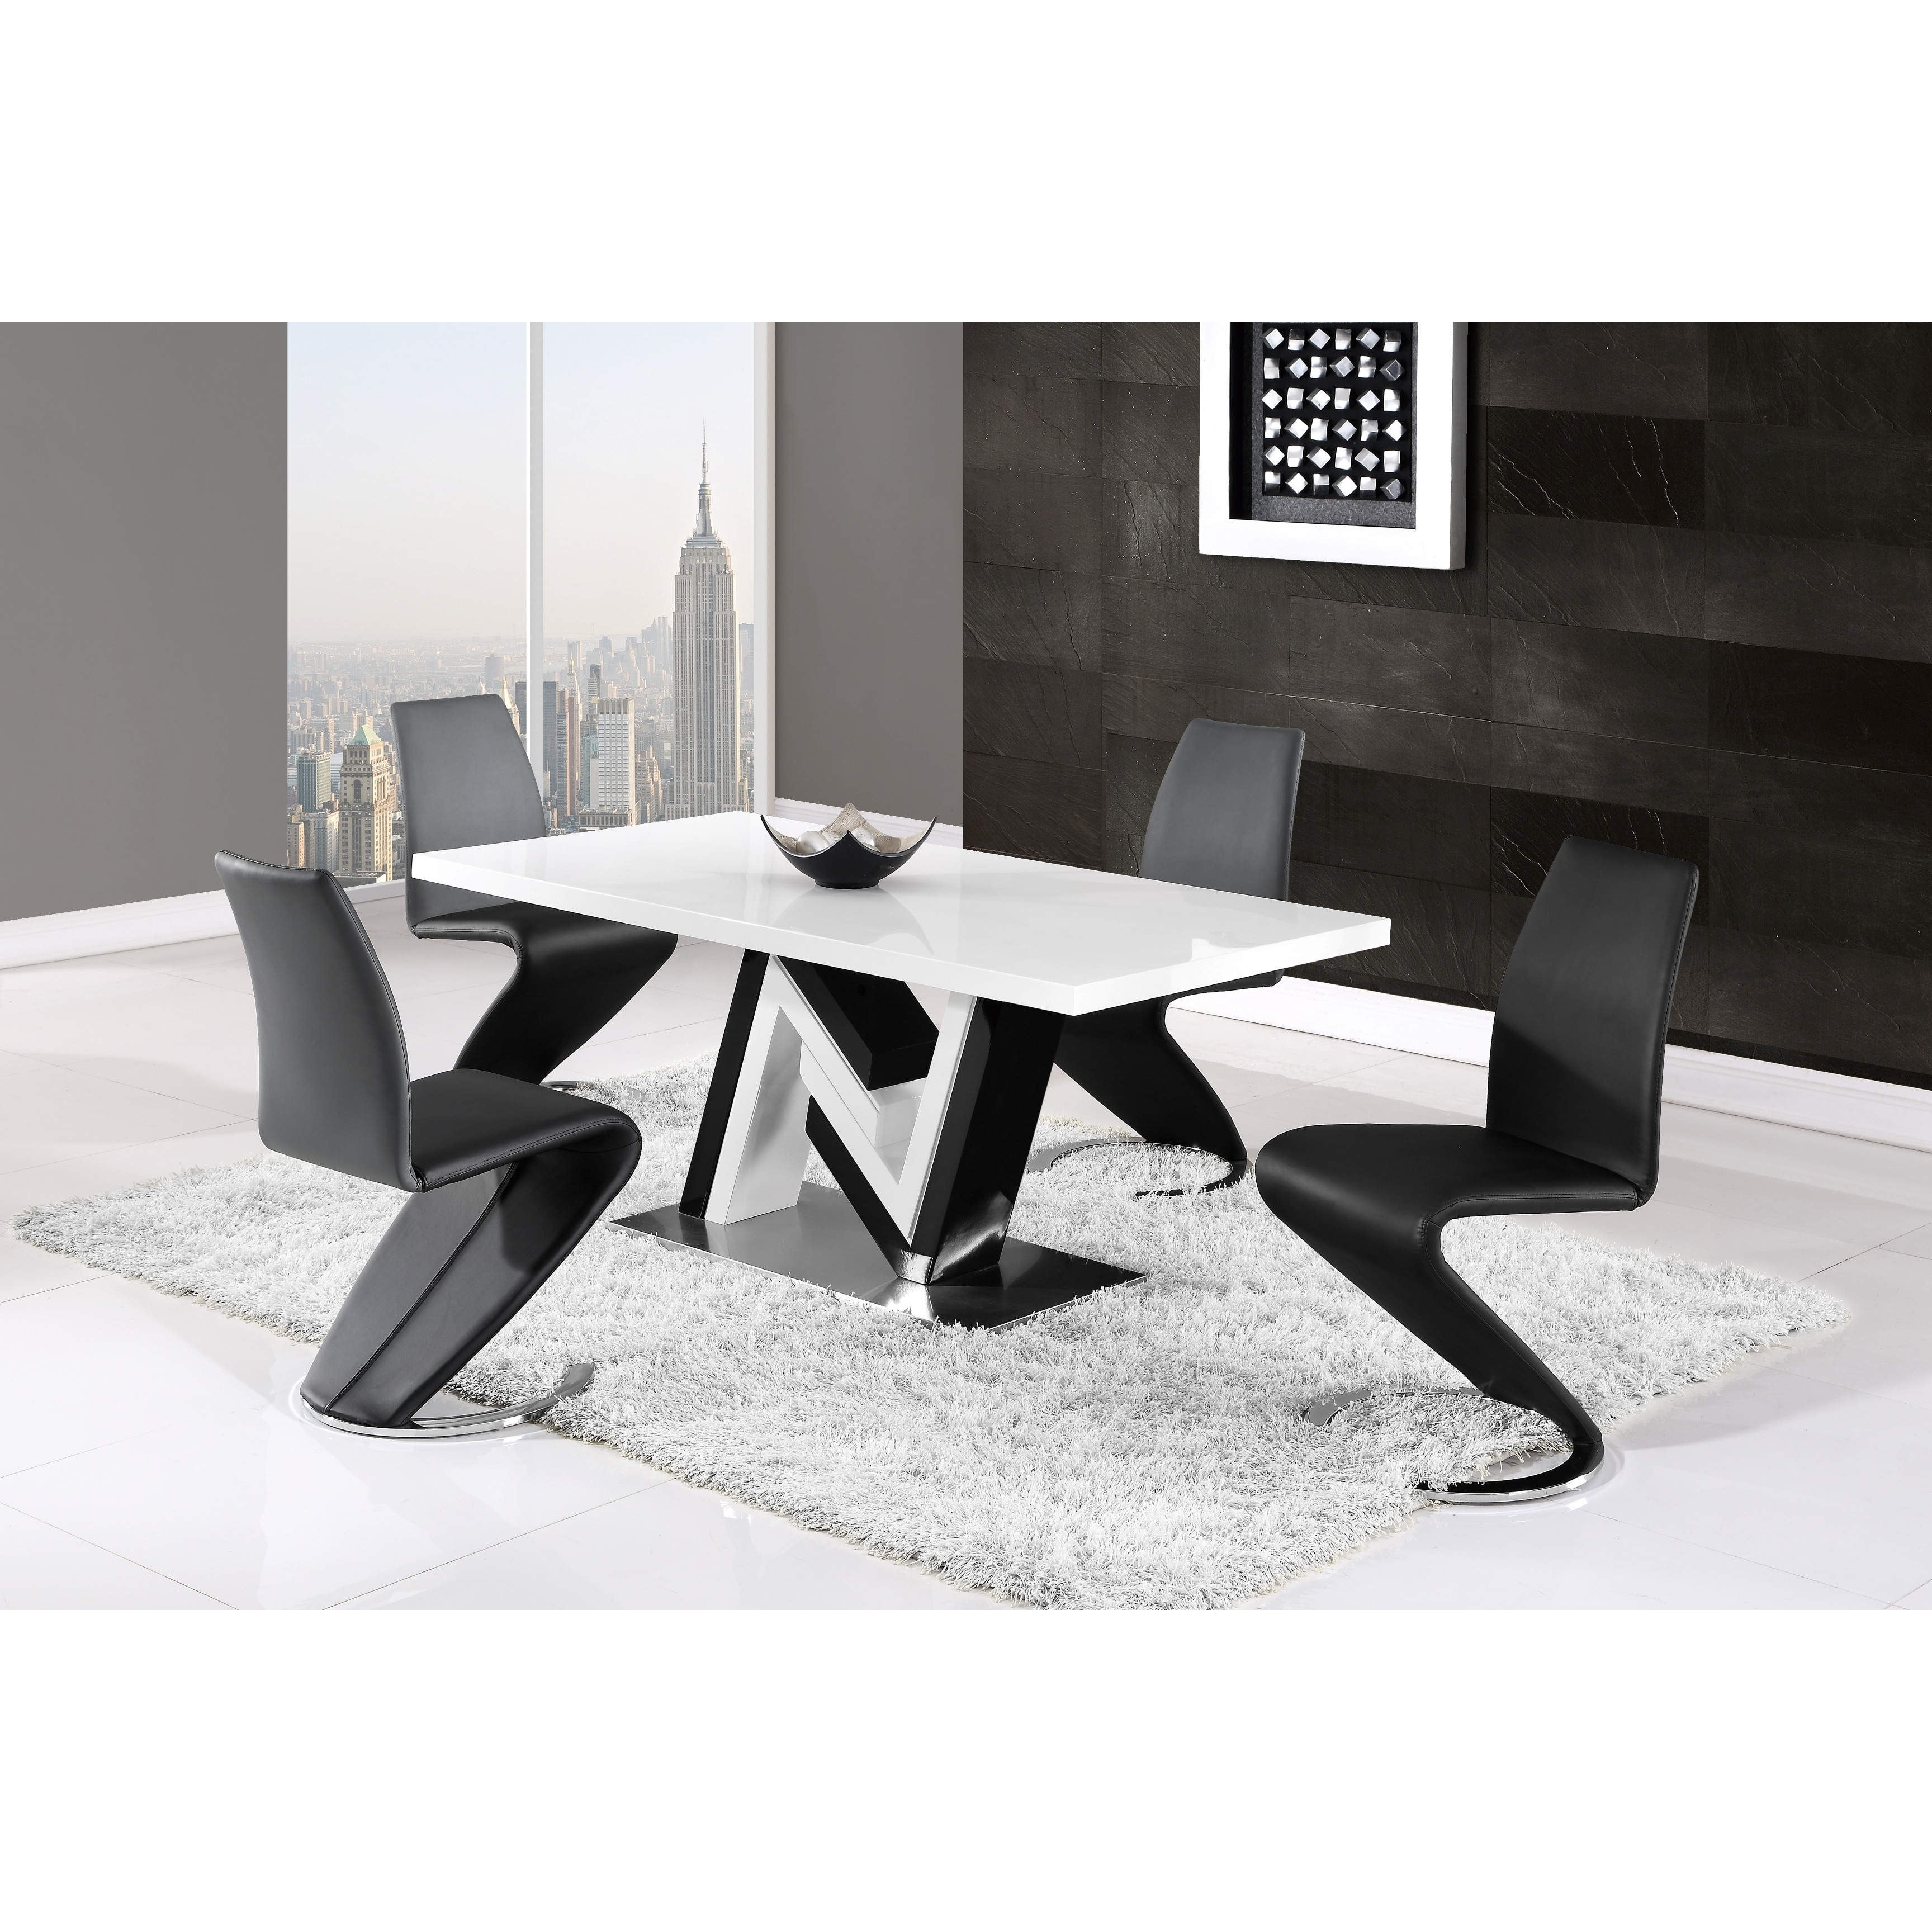 Global Furniture Contemporary Black and White Dining Table - Free ...